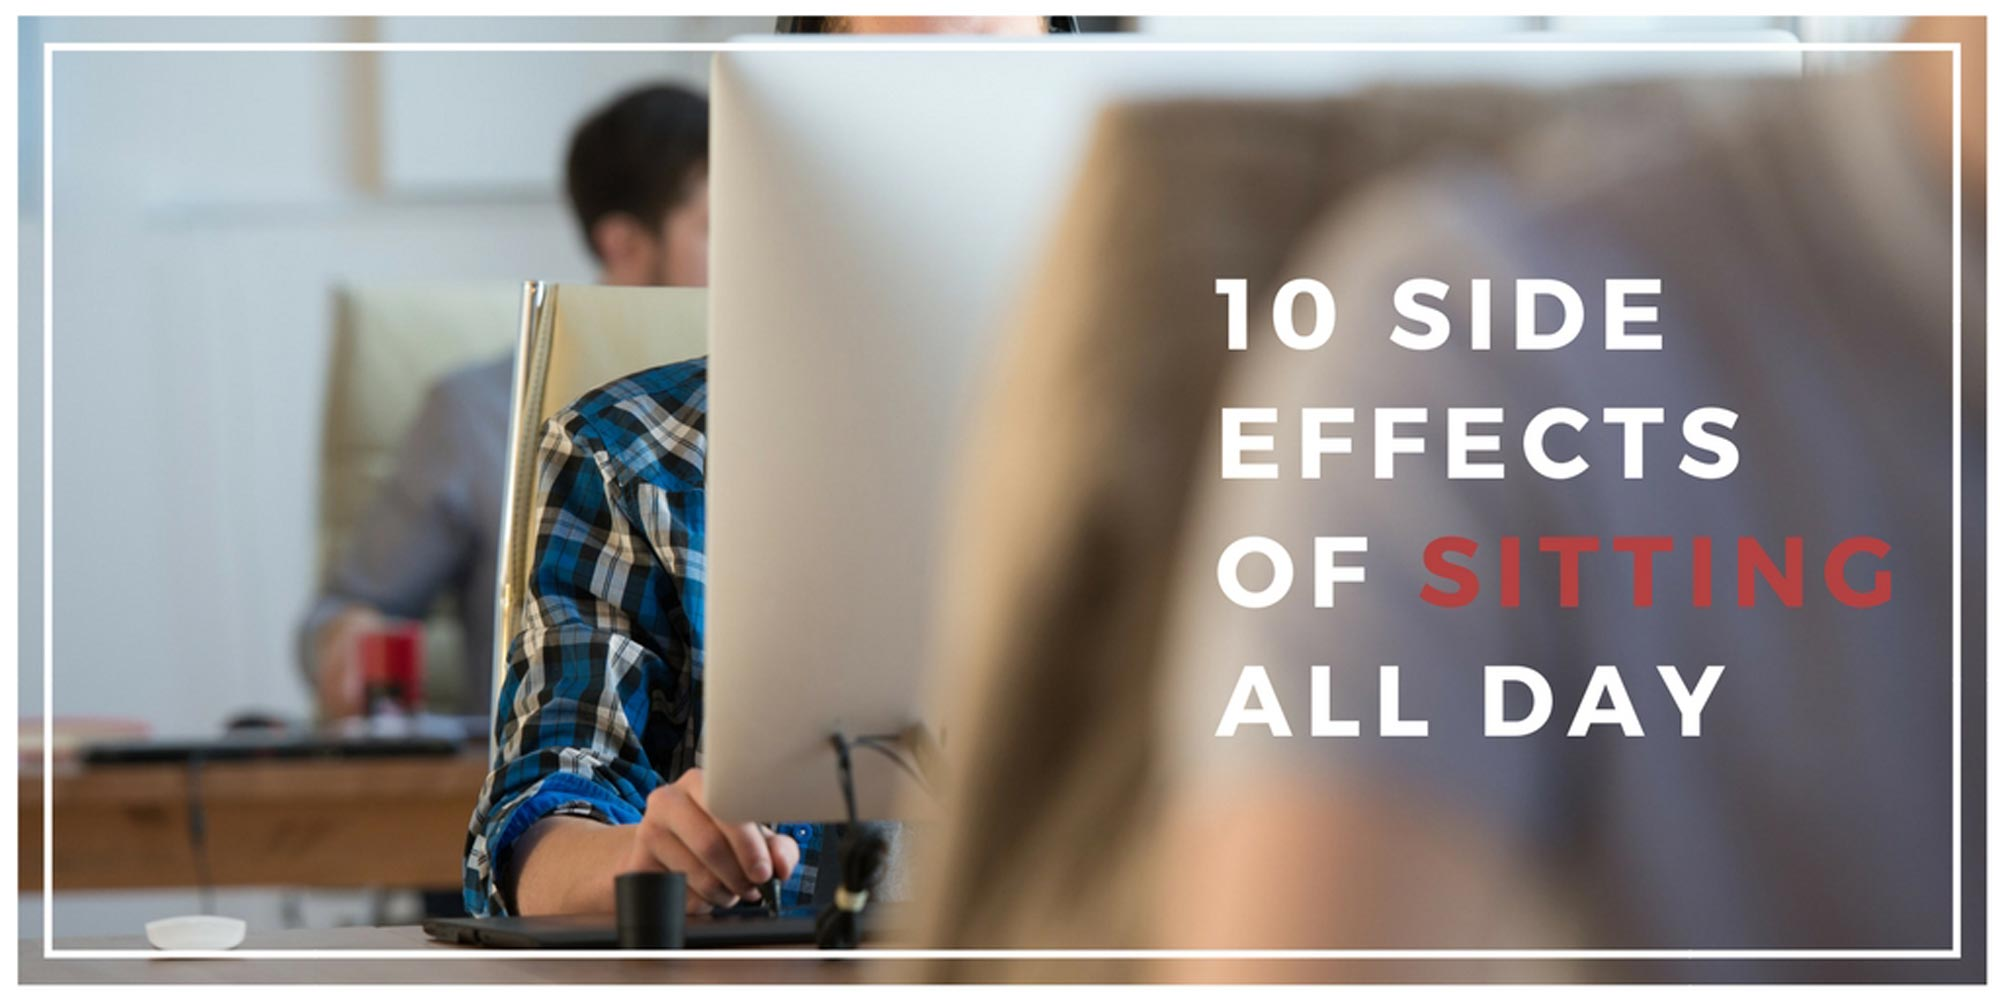 10 Side Effects of Sitting All Day - HOVR Heated Mage Office Chair on heated camp chair, heated massage chair, heated chair mat, heated folding chair, heated seat pads for chairs, heated clinical chair, china chair, heated chair cushion, person on a vibrating chair, heated chair cover, heated recliner chairs, heated back massager for chairs, vibrating gaming chair, bathroom chair, heated lounge chair, heated outdoor chair, heated ergonomic chair, vibration chair, heated bean bag chair, heated desk chair pad,